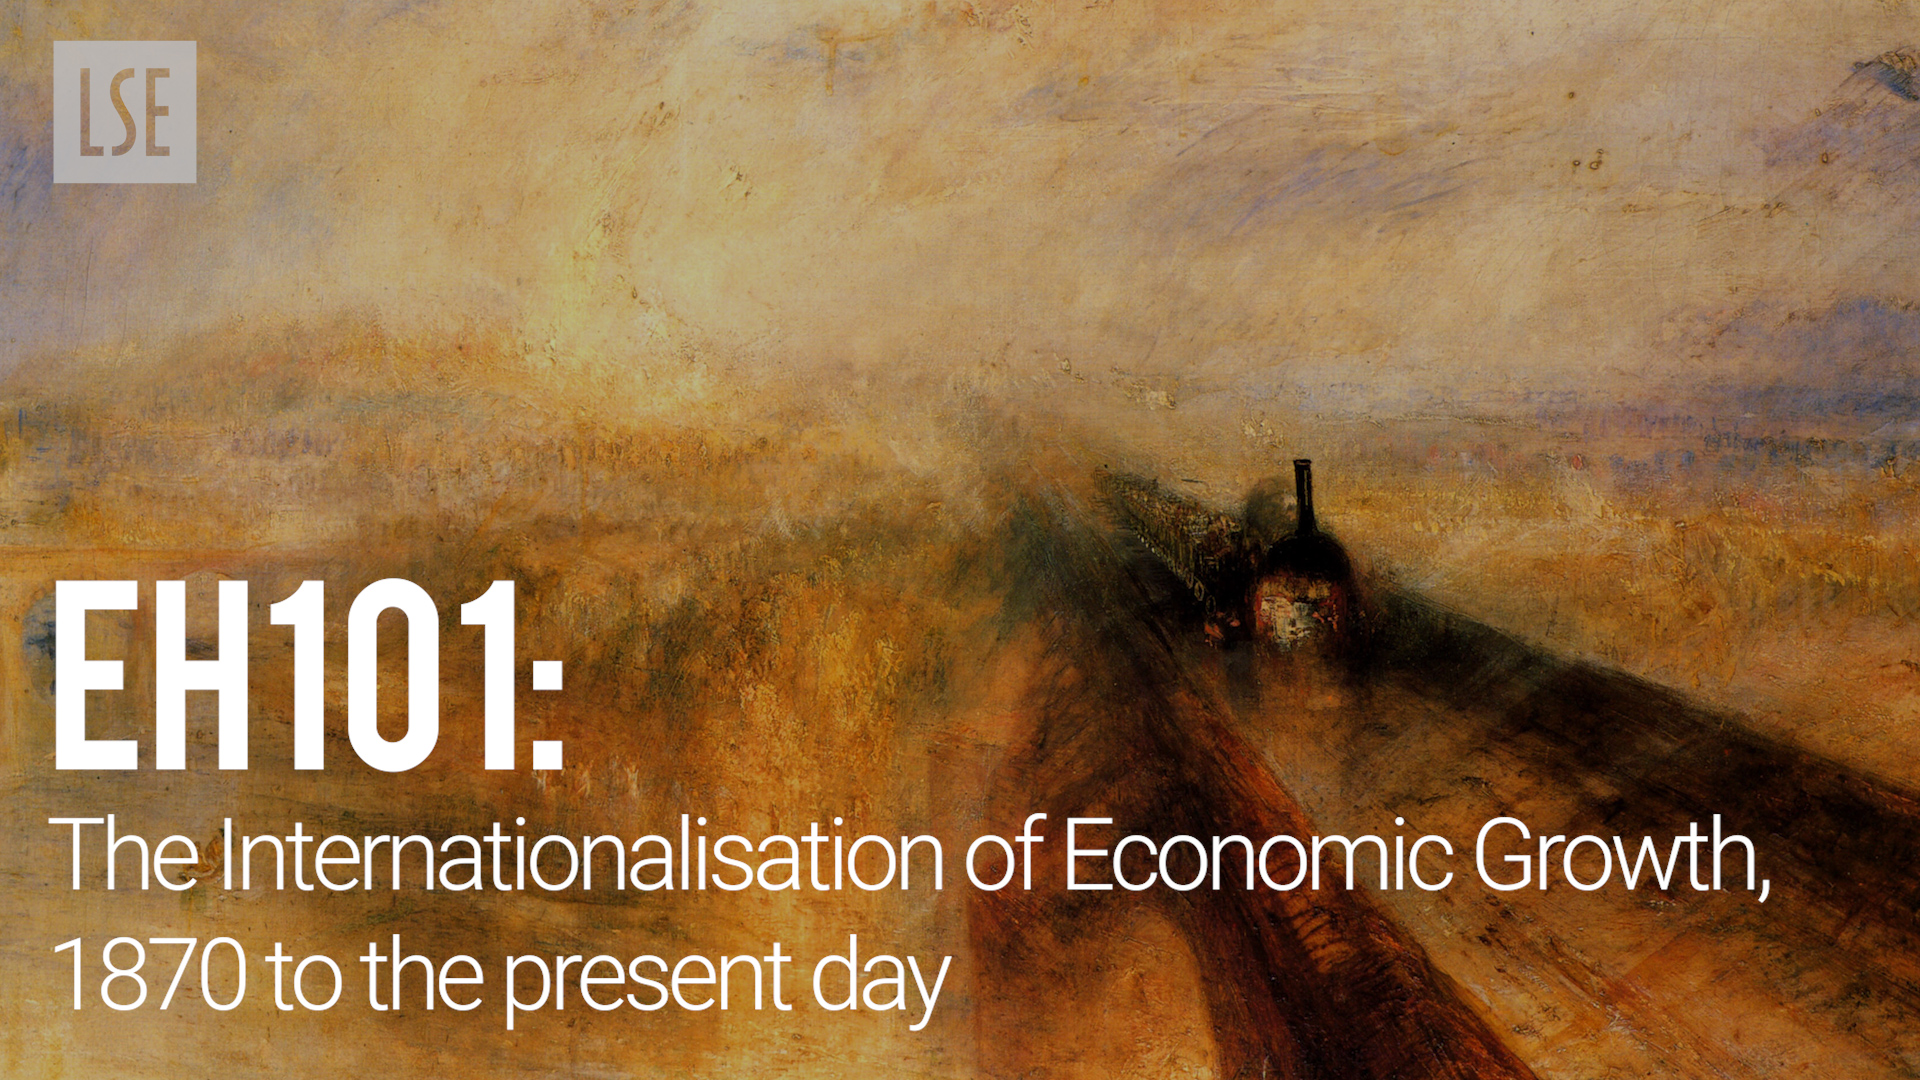 EH101 - The Internationalisation of Economic Growth, 1870 to the present day, by Professor Chris Minns and Dr Eric Schneider